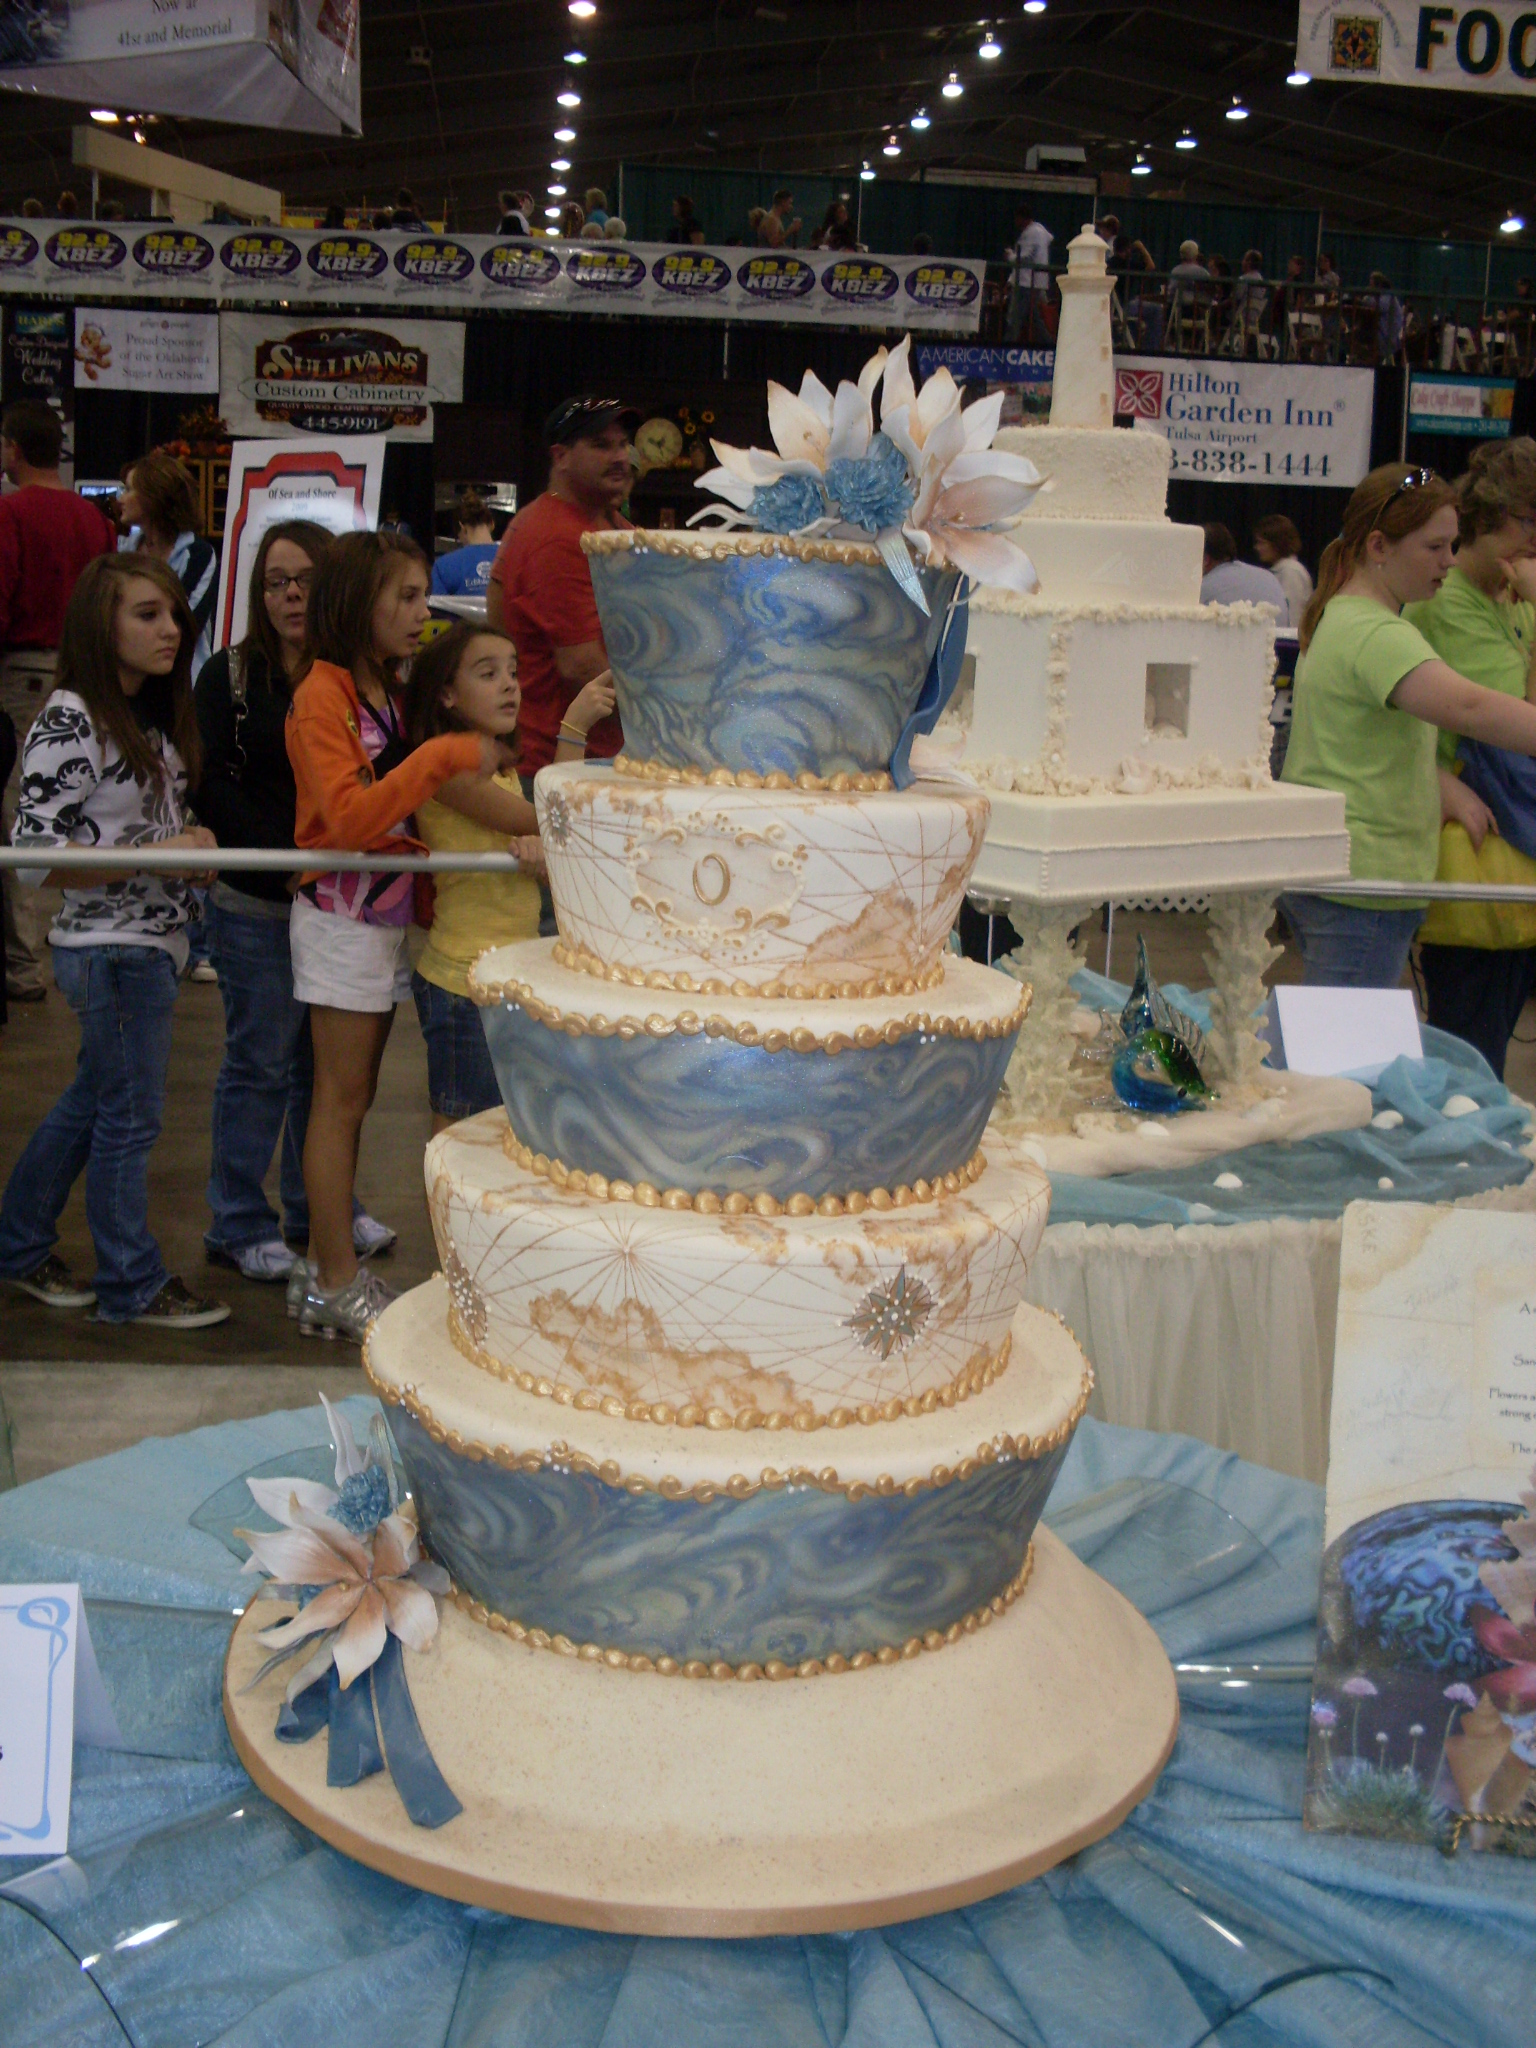 Notice the beautiful blue swirls. That's fondant marbling at its finest.